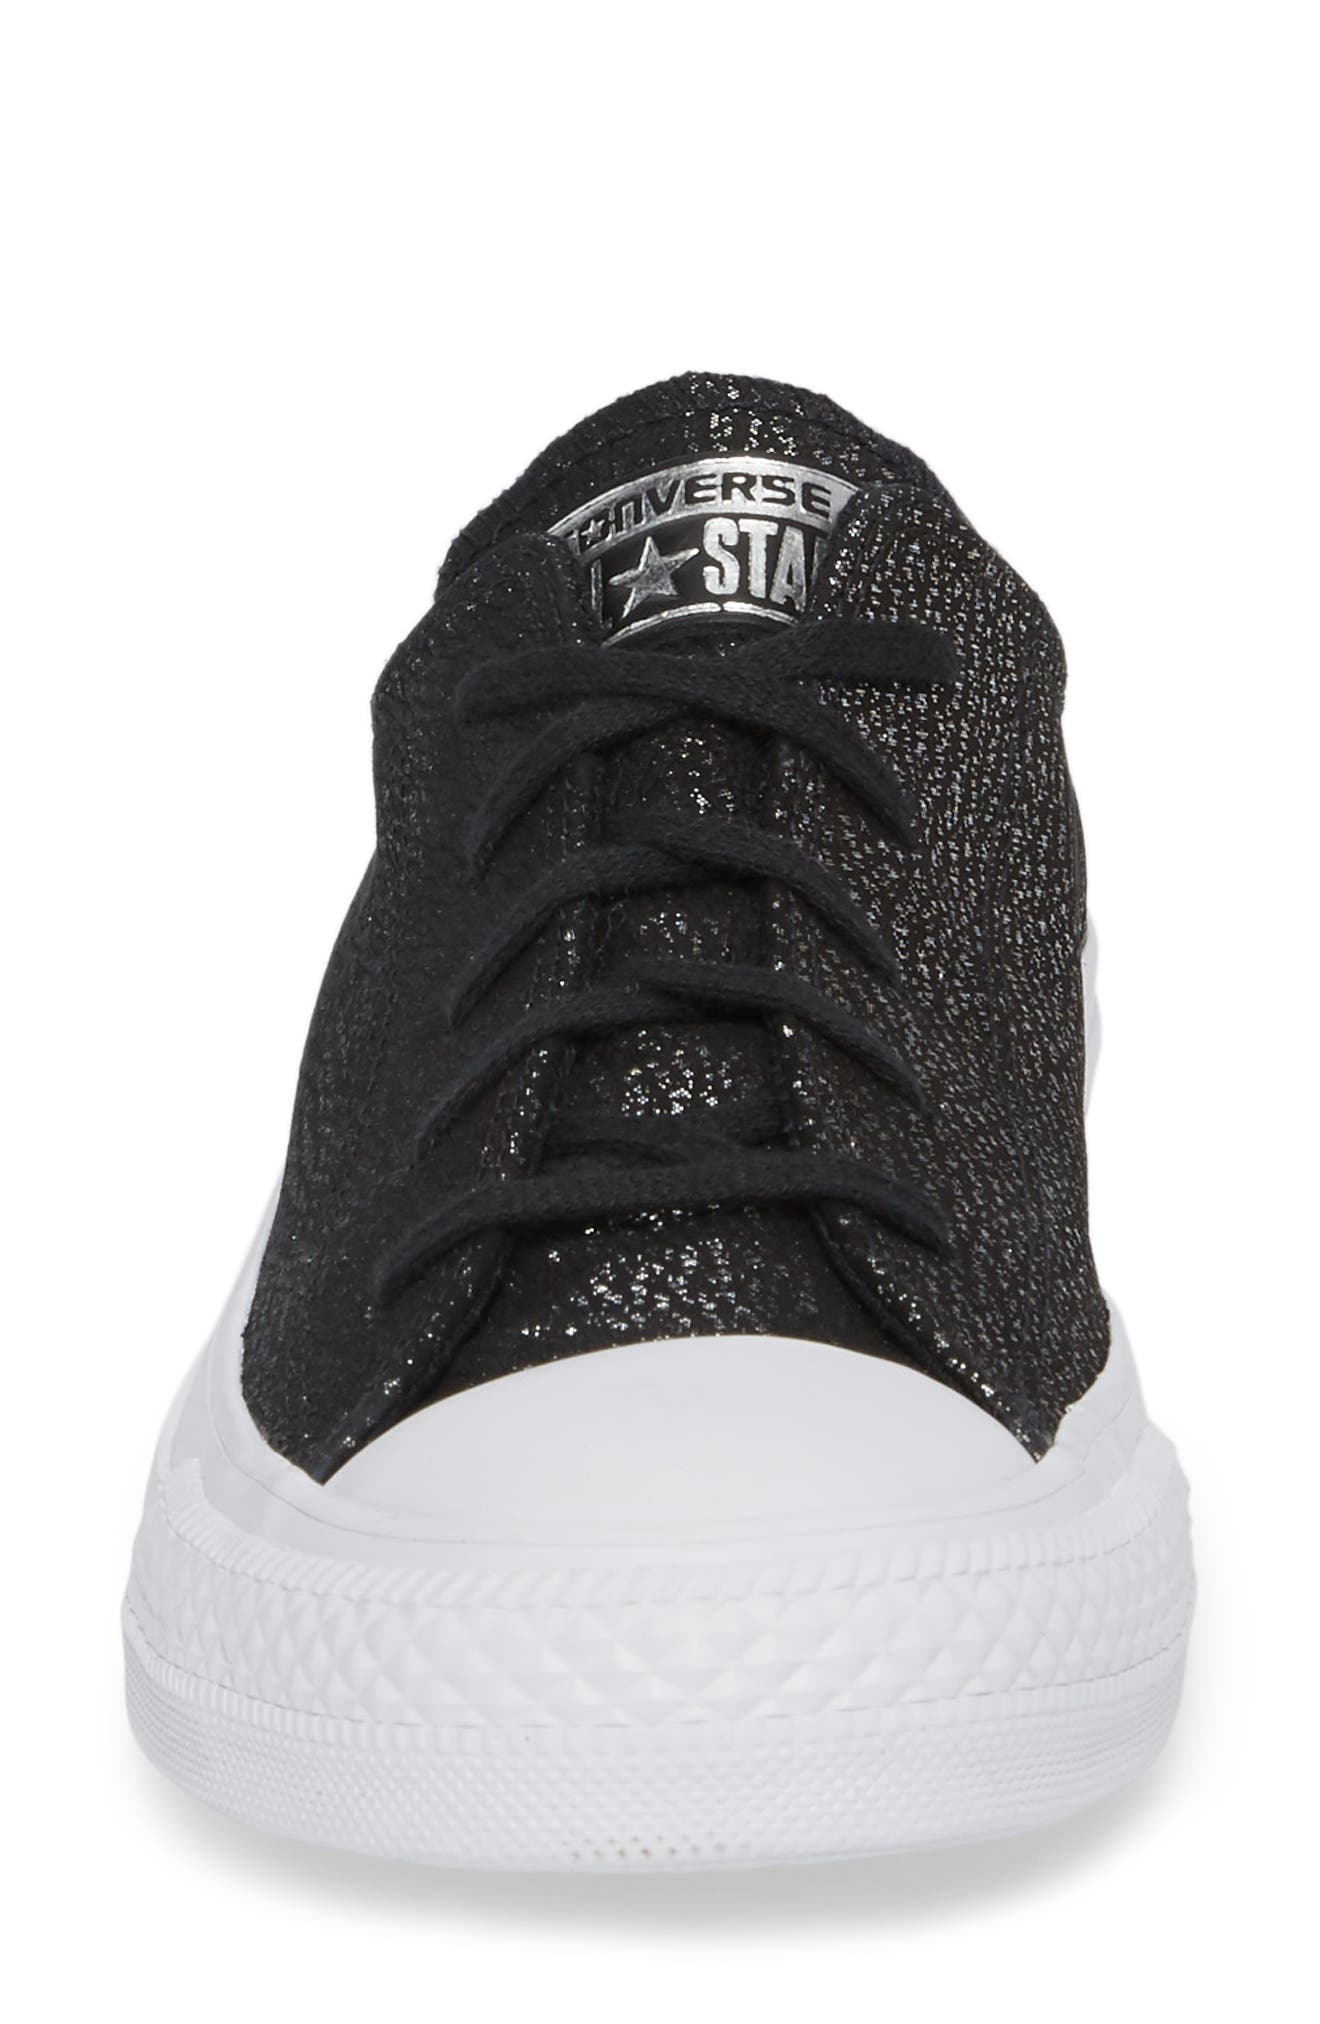 Chuck Taylor<sup>®</sup> All Star<sup>®</sup> Tipped Metallic Low Top Sneaker,                             Alternate thumbnail 4, color,                             001